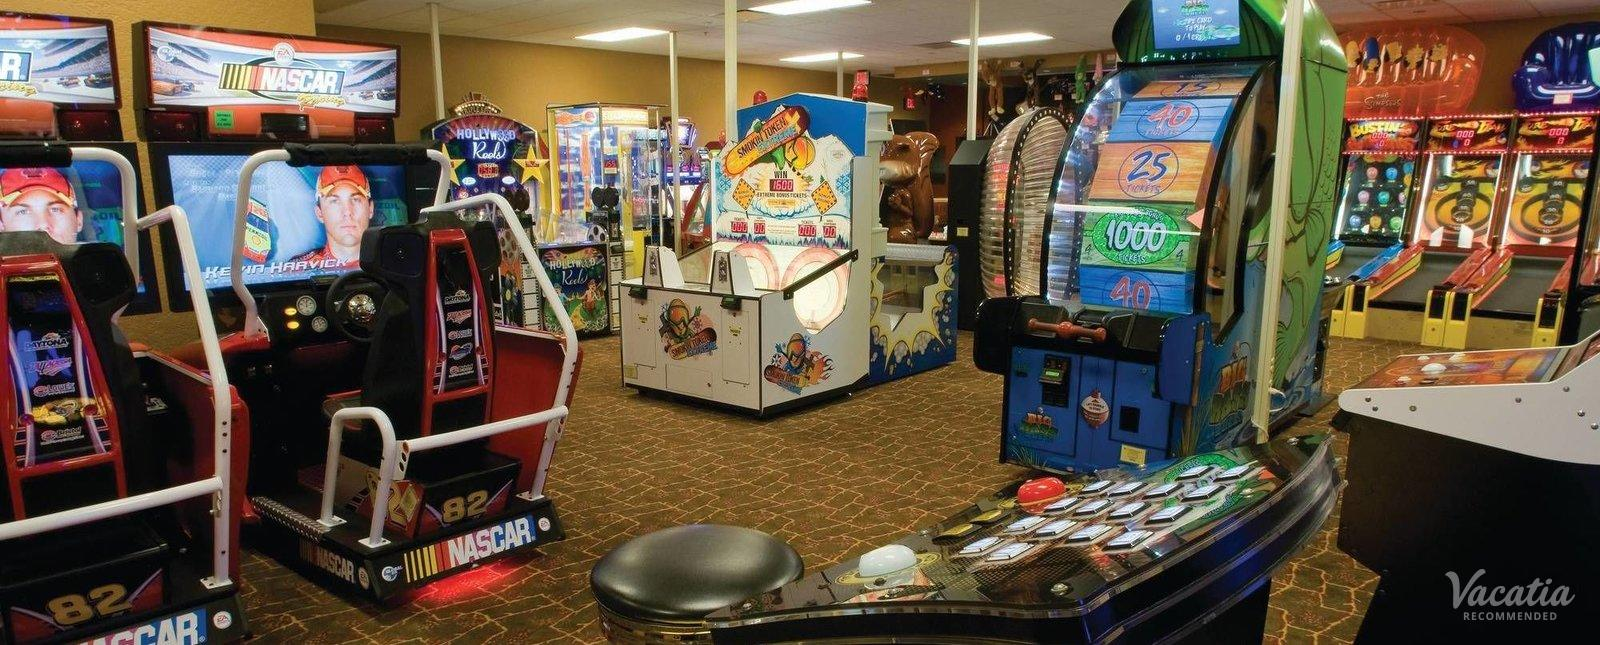 Great Smokies Lodge Wyndham Game Room